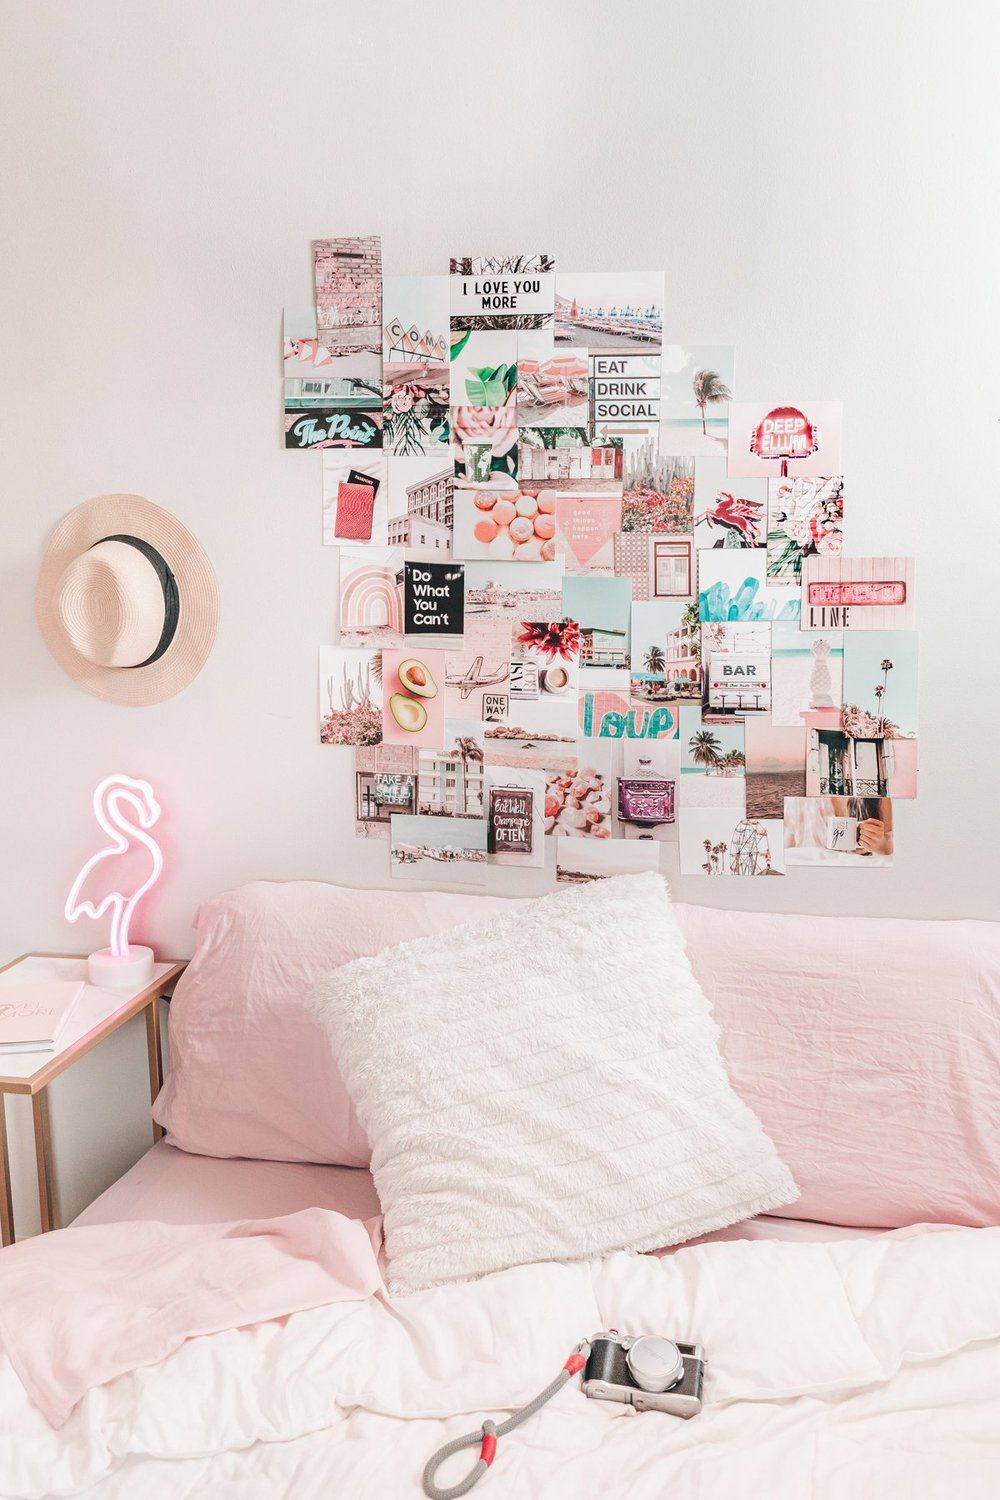 Pin On College Bedroom design size 4x6